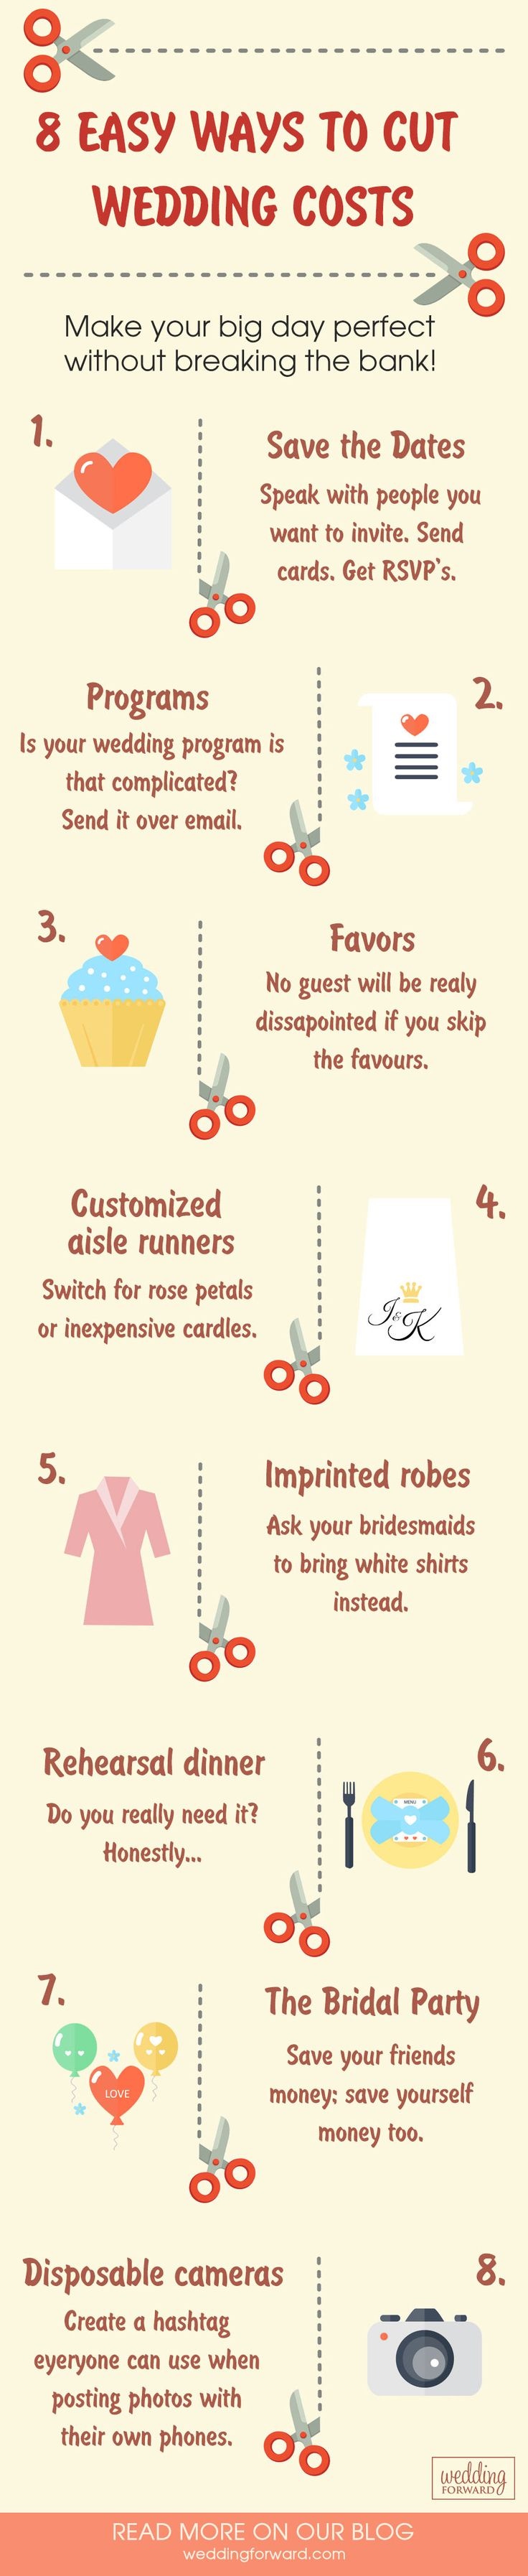 Best Wedding Freebies For Saving Money ❤️ There is absolutely zero doubt that a wedding can be incredibly expensive. However, there are lots of ways to save money on your perfect wedding if you know where to look. See more: http://www.weddingforward.com/best-wedding-freebies-saving-money/ #wedding #saving #money